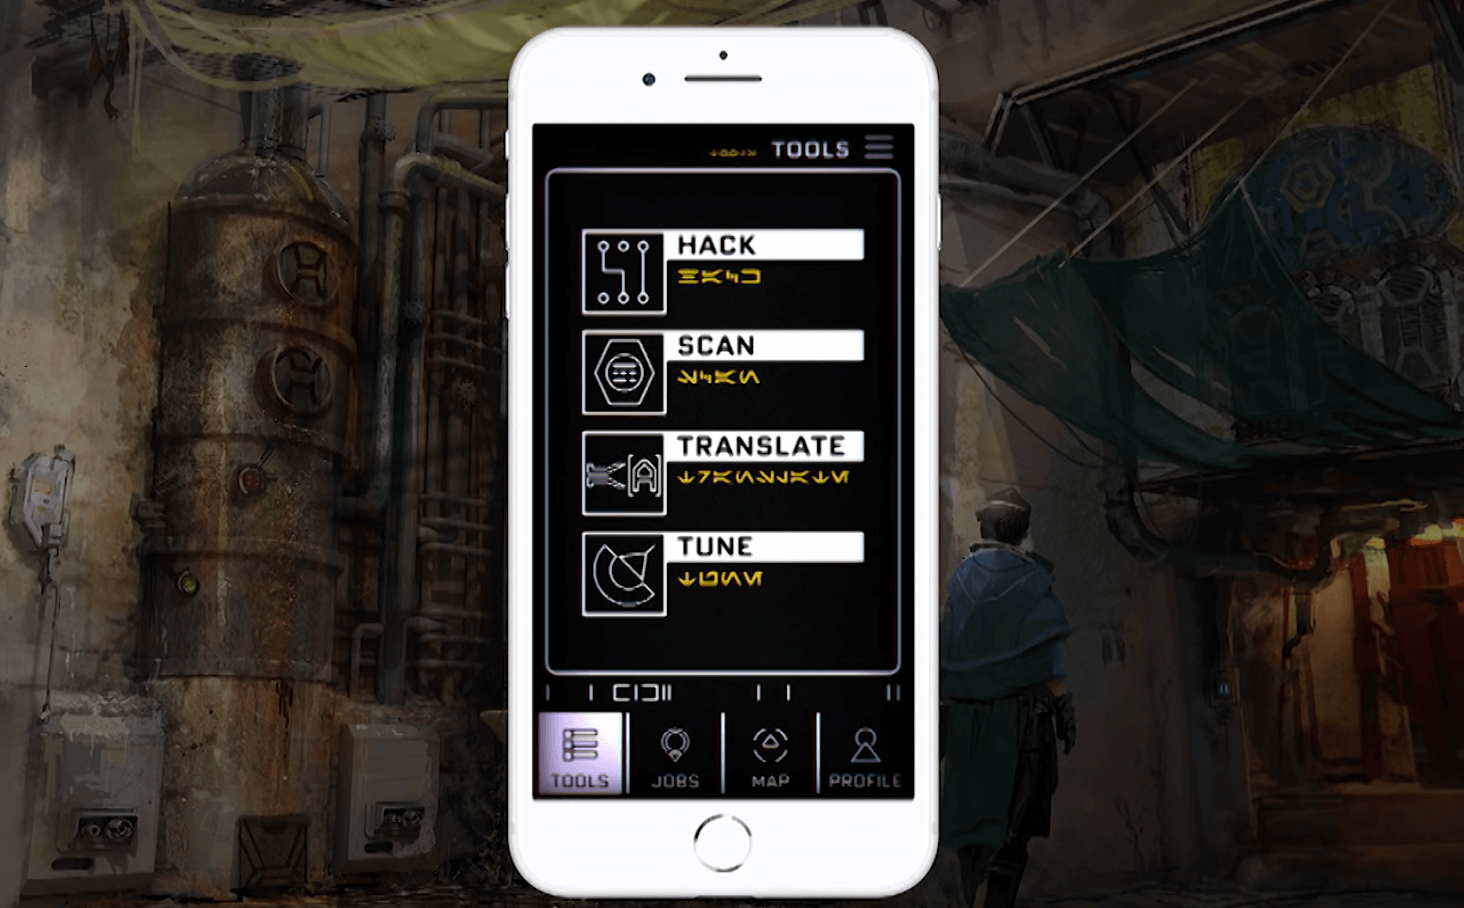 Play Disney Parks App Star Wars: Galaxy's Edge iPhone functions and game